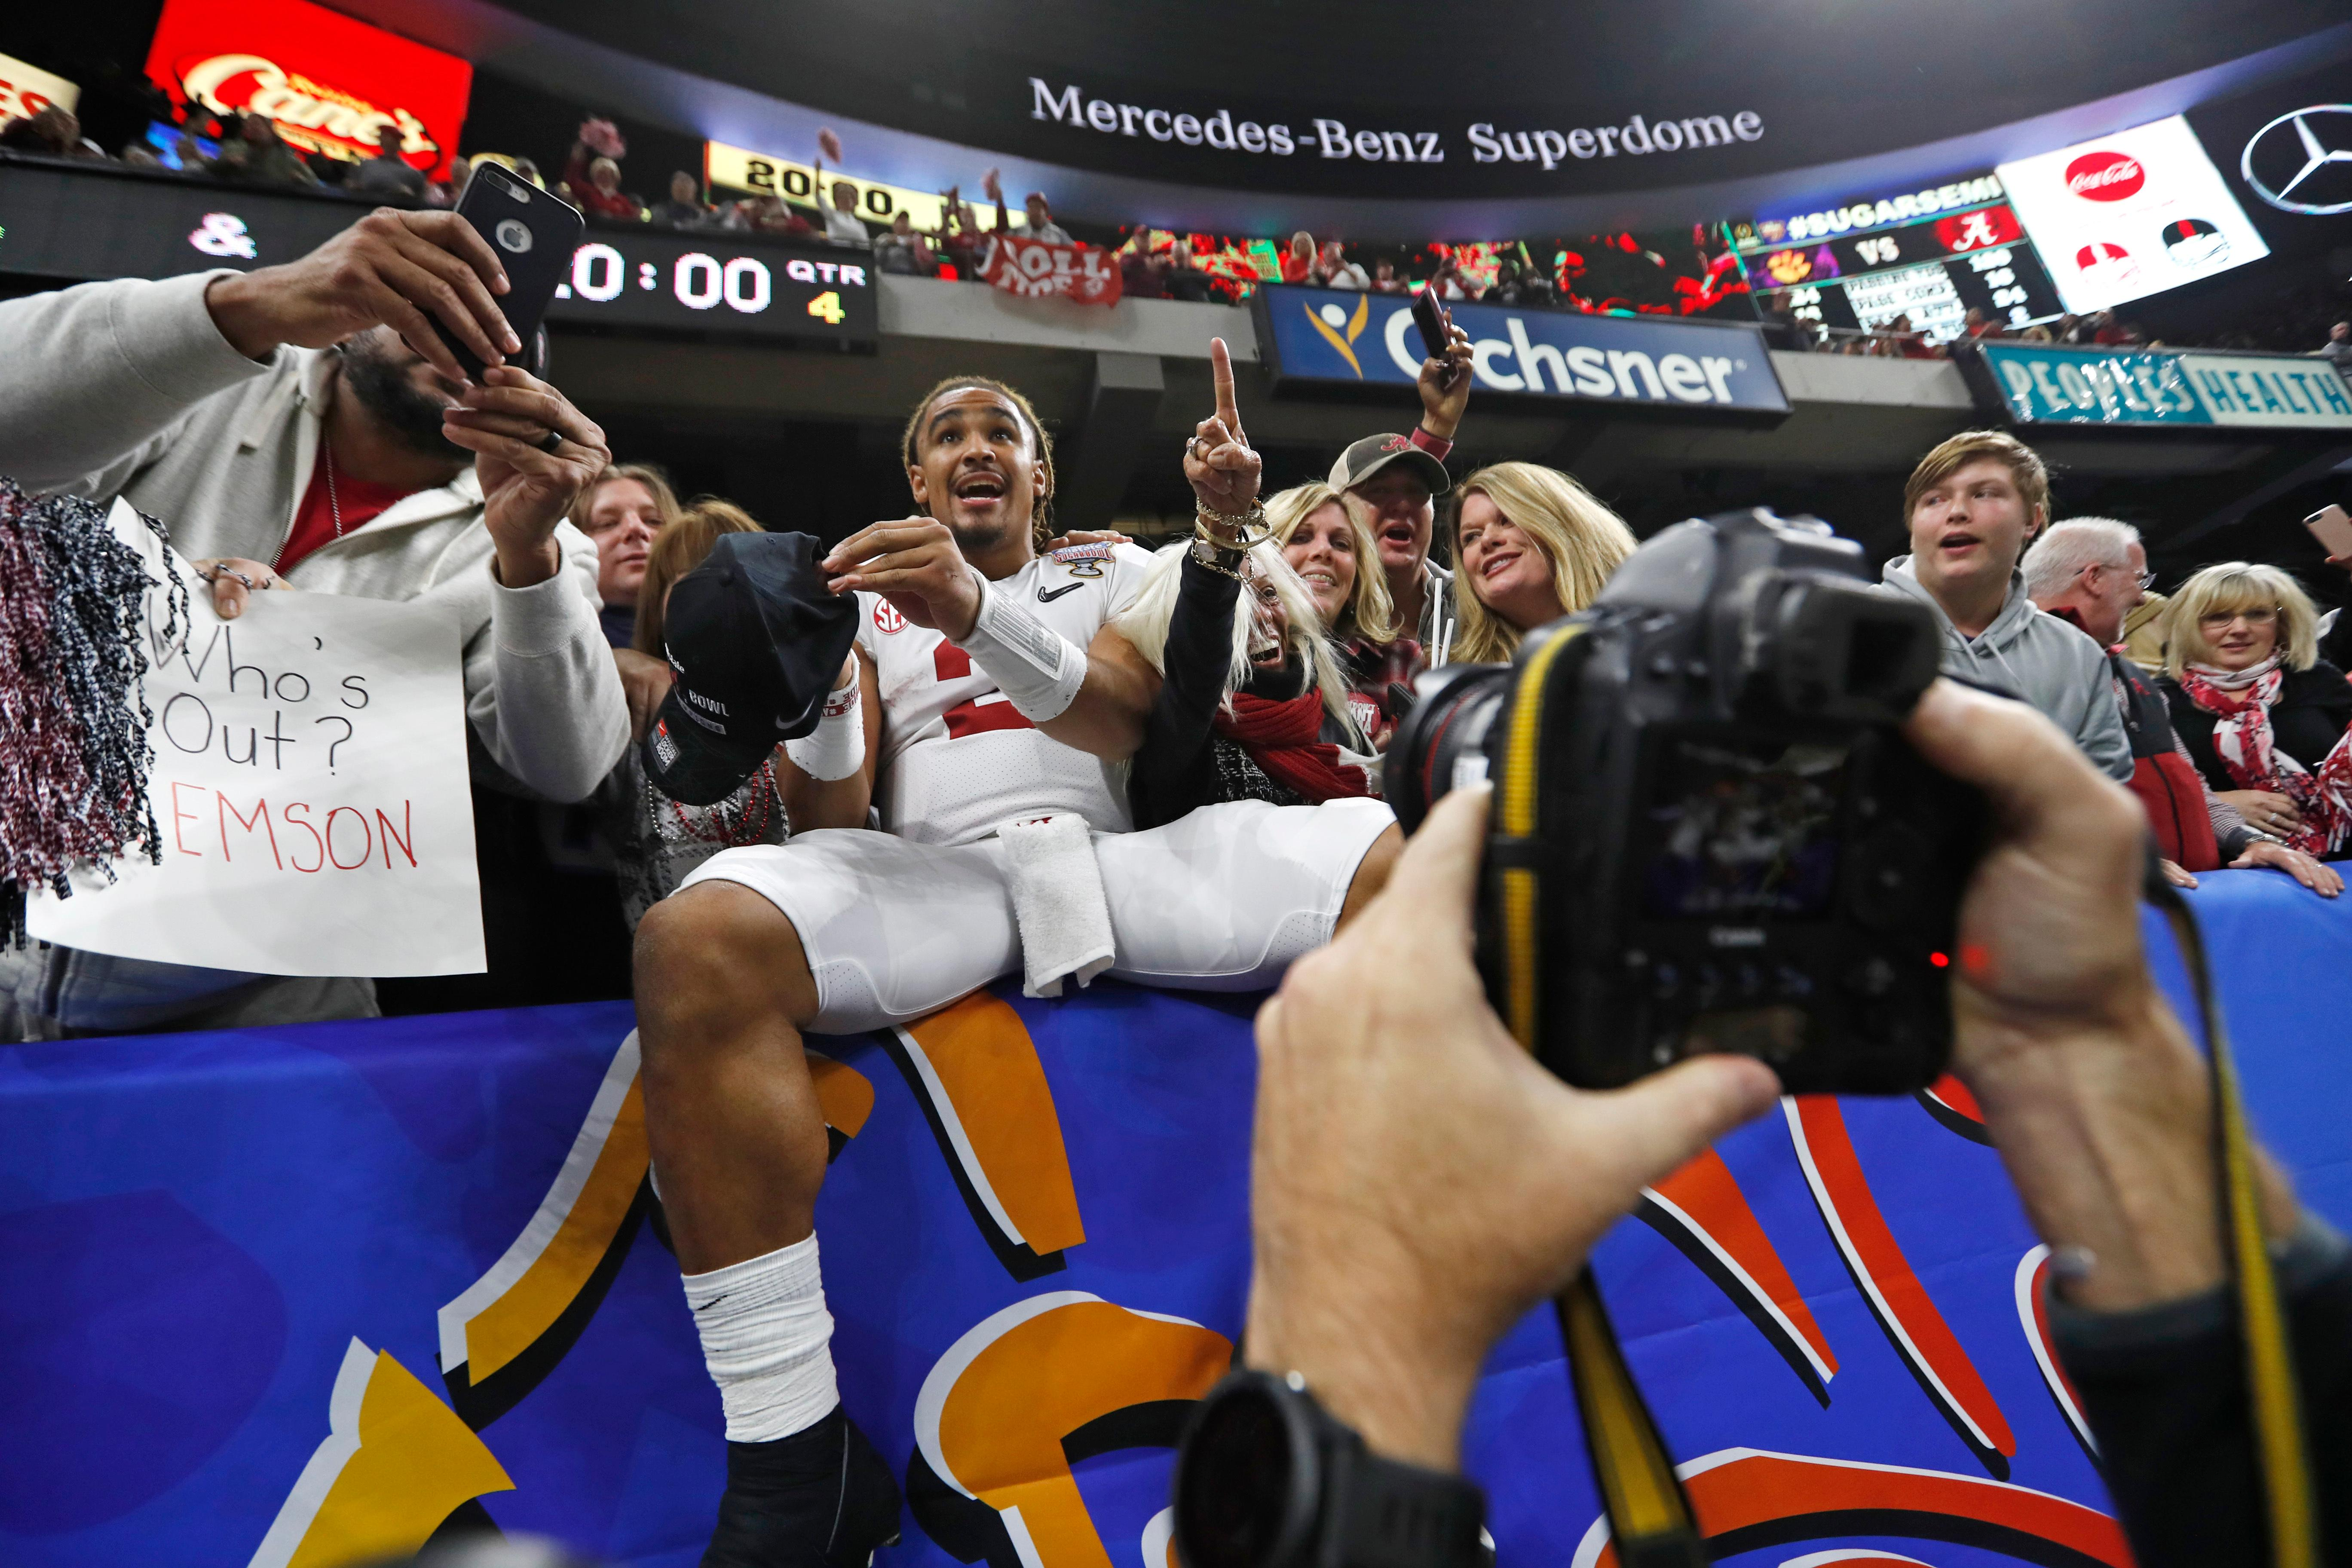 Alabama quarterback Jalen Hurts (2) celebrates by jumping into the stands defeating Clemson in the Sugar Bowl semi-final playoff game for the NCAA college football national championship, in New Orleans, Monday, Jan. 1, 2018. Alabama won 24-6 to advance to the national championship game. (AP Photo/Gerald Herbert)